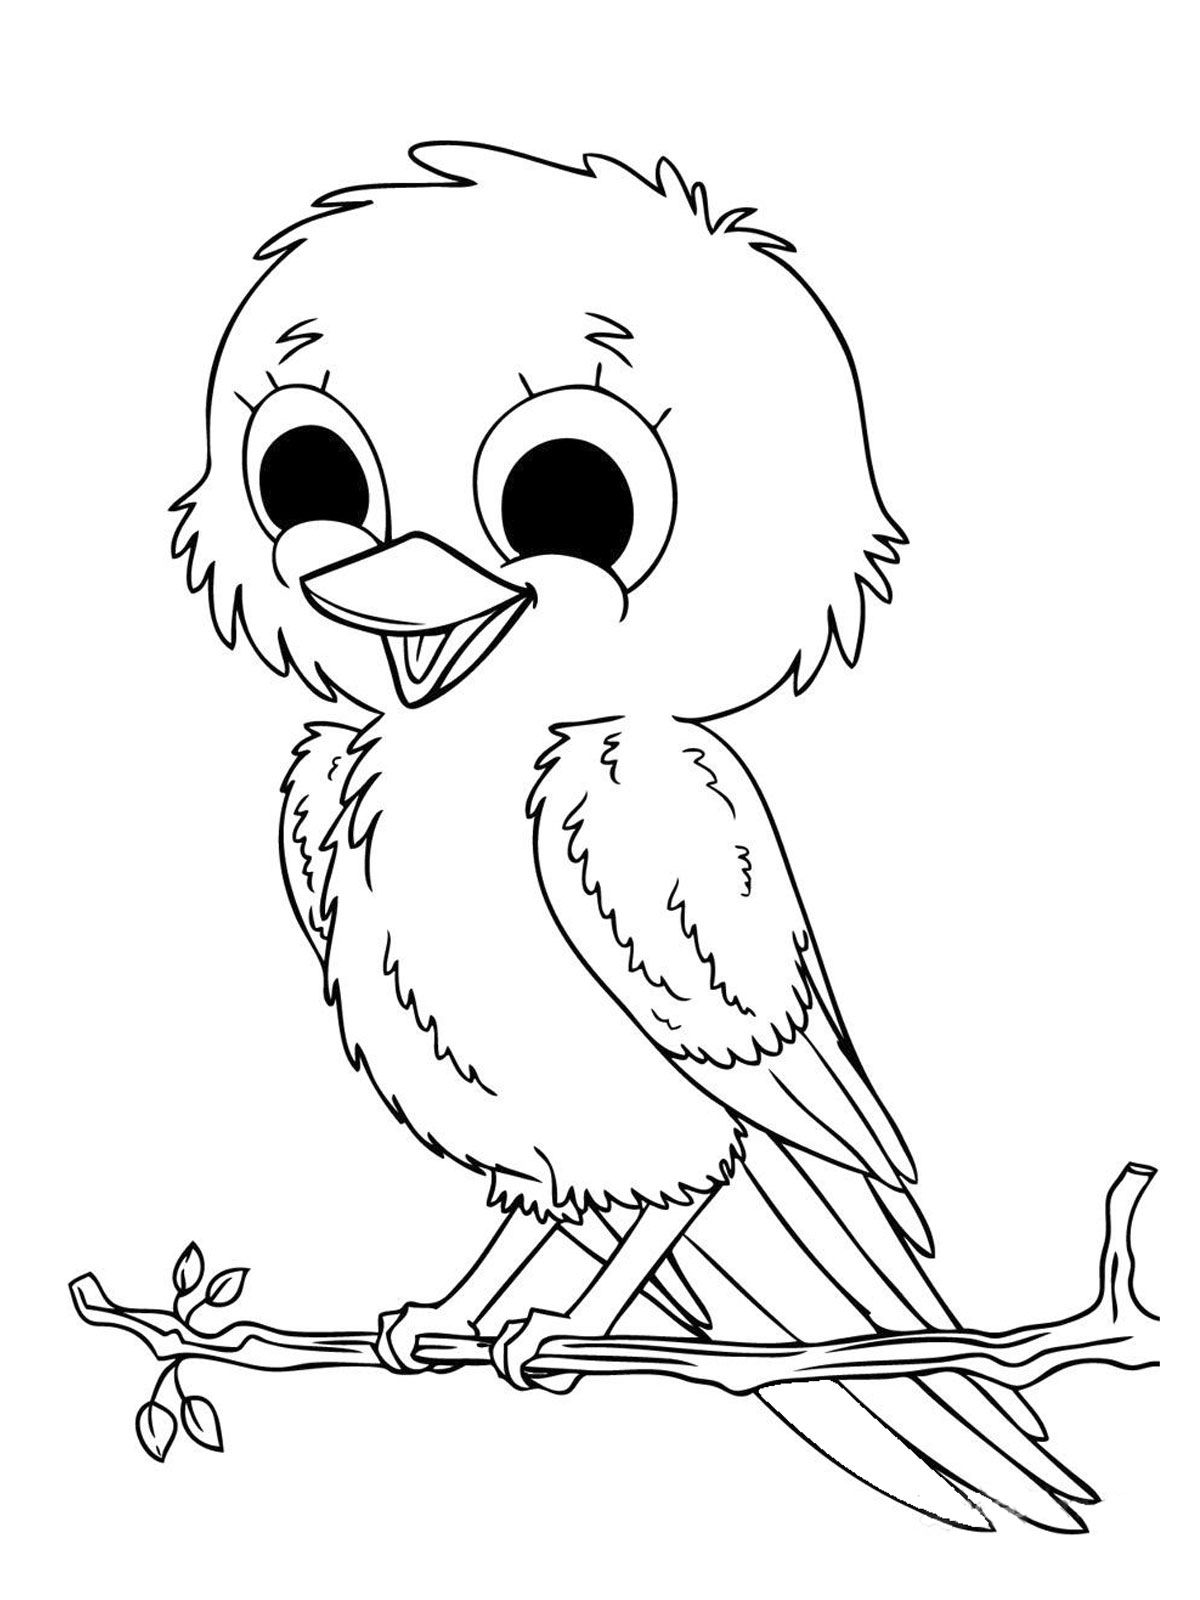 Childrens online colouring book - Pictures Baby Sparrow Birds Coloring Pages Bird Coloring Pages Kidsdrawing Free Coloring Pages Online